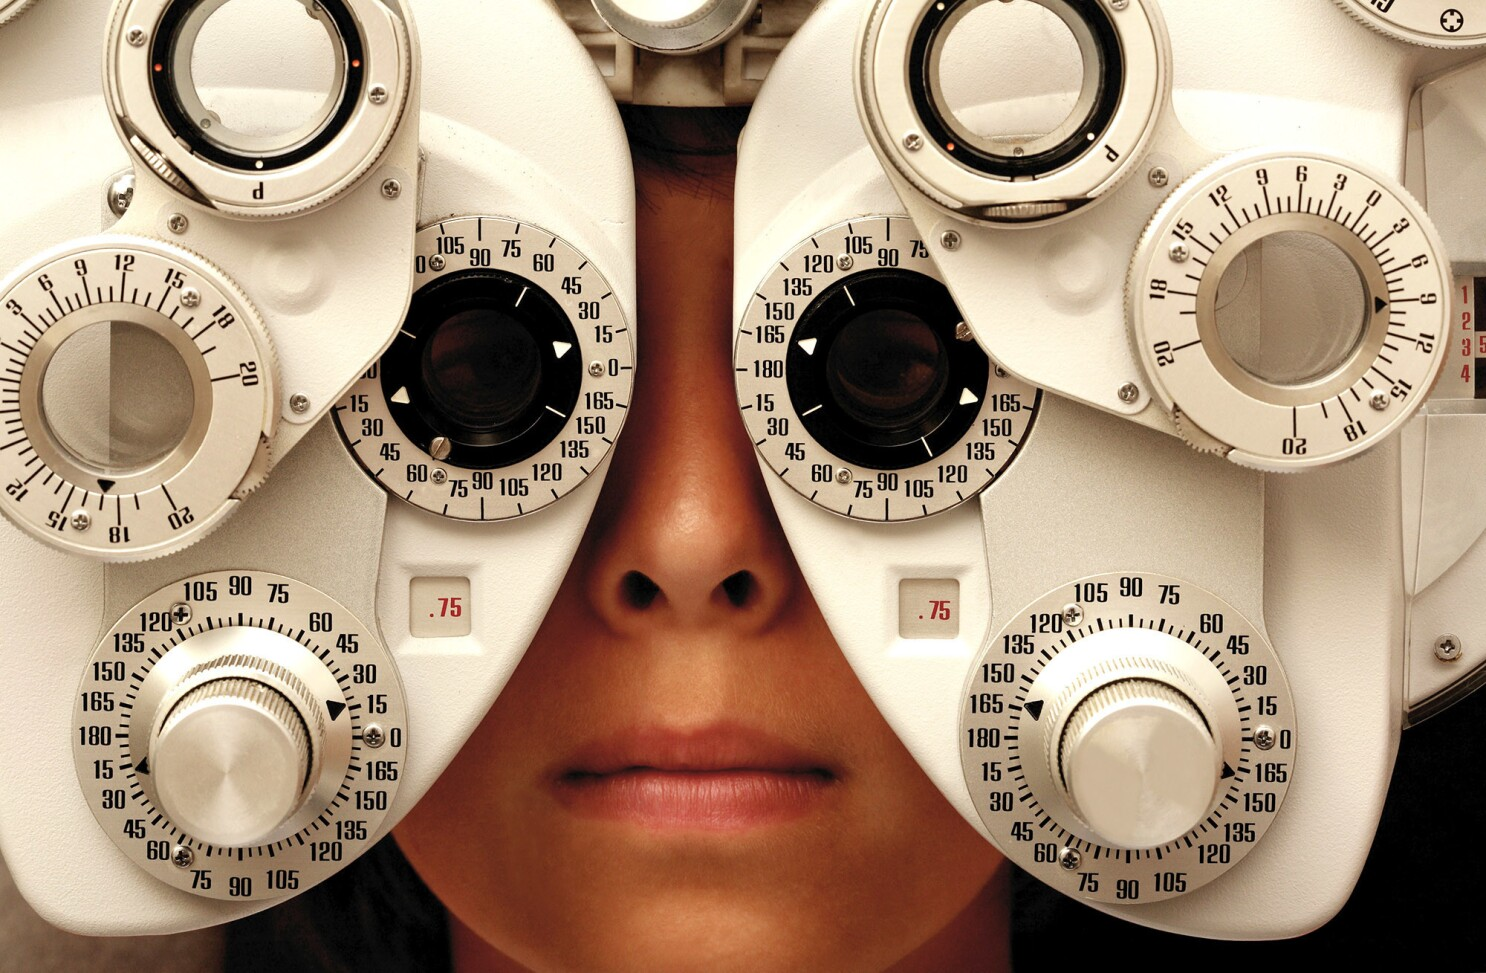 Column: Why are glasses so expensive? The eyewear industry prefers to keep that blurry